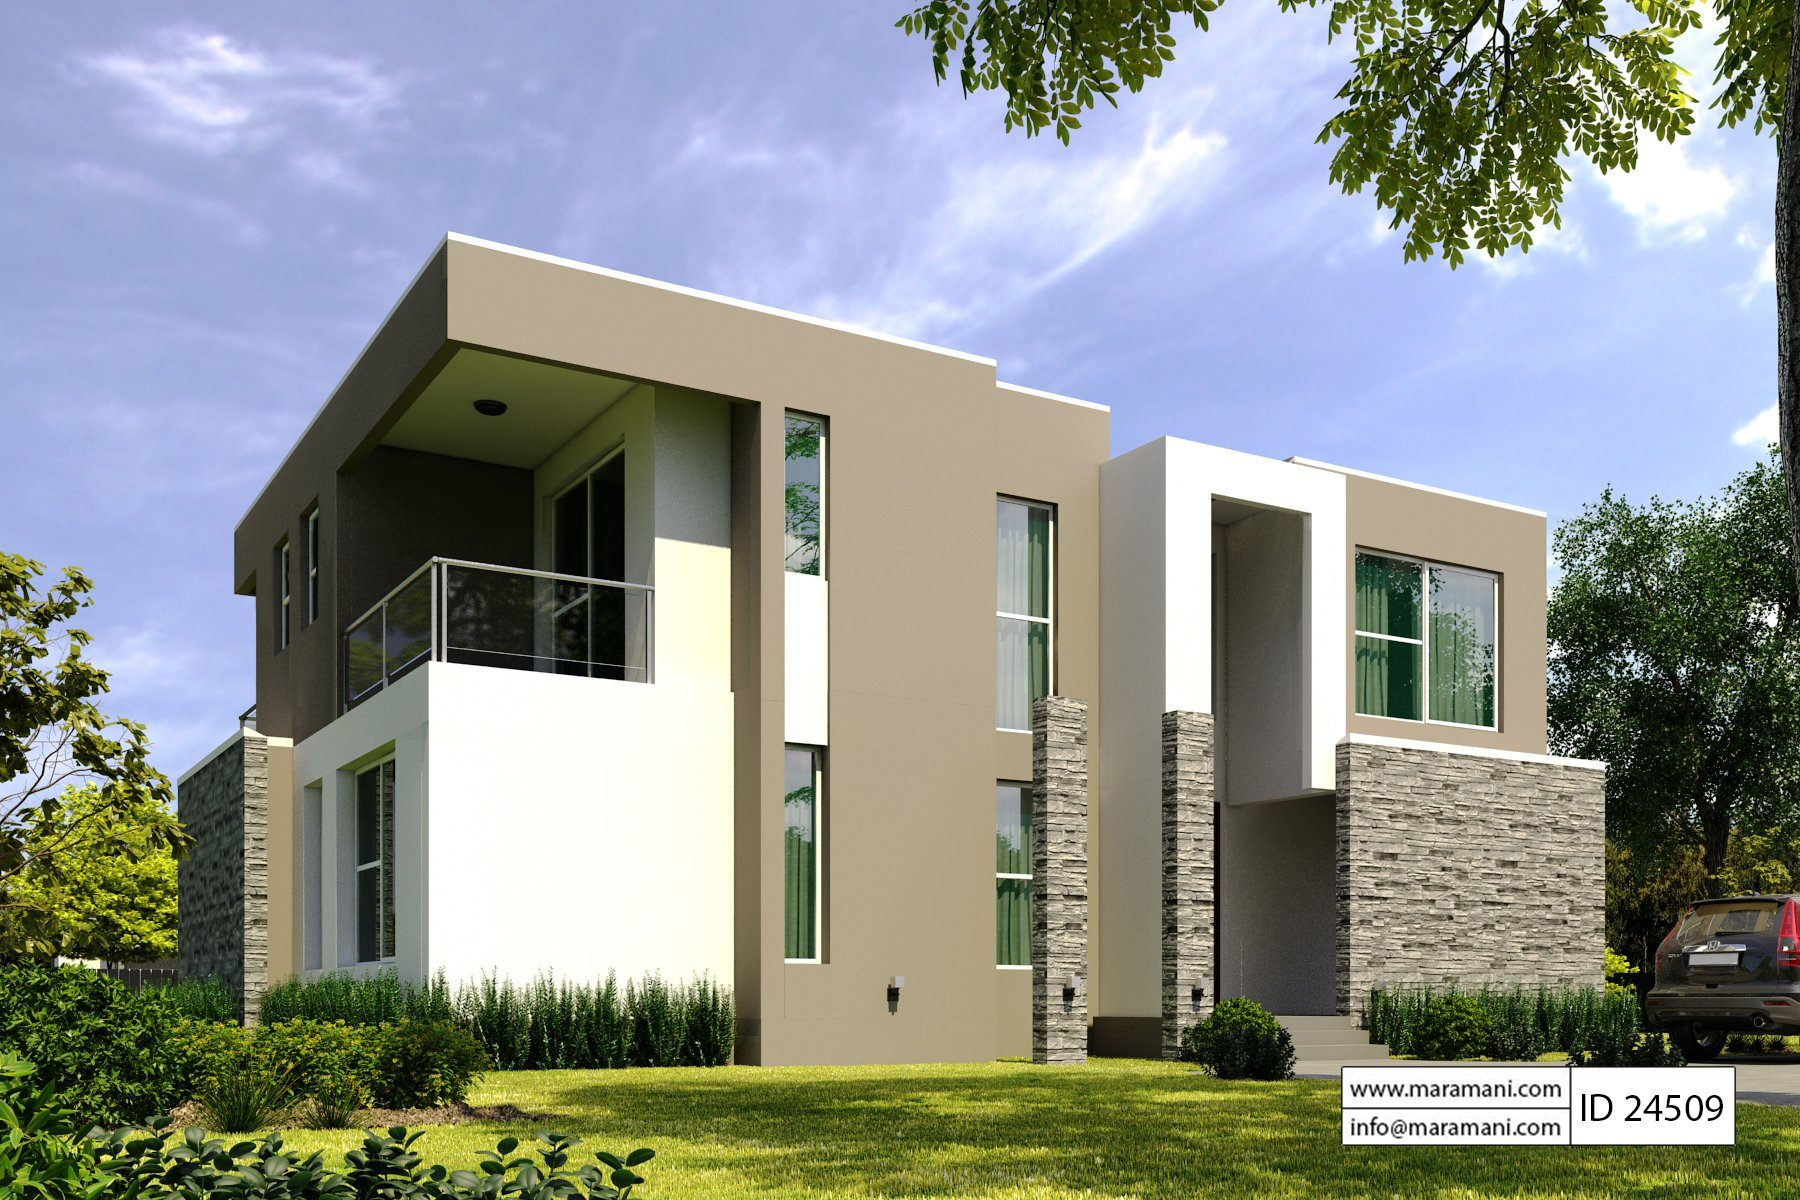 4 bedroom modern house plan - ID 24509 - House Plans by ...